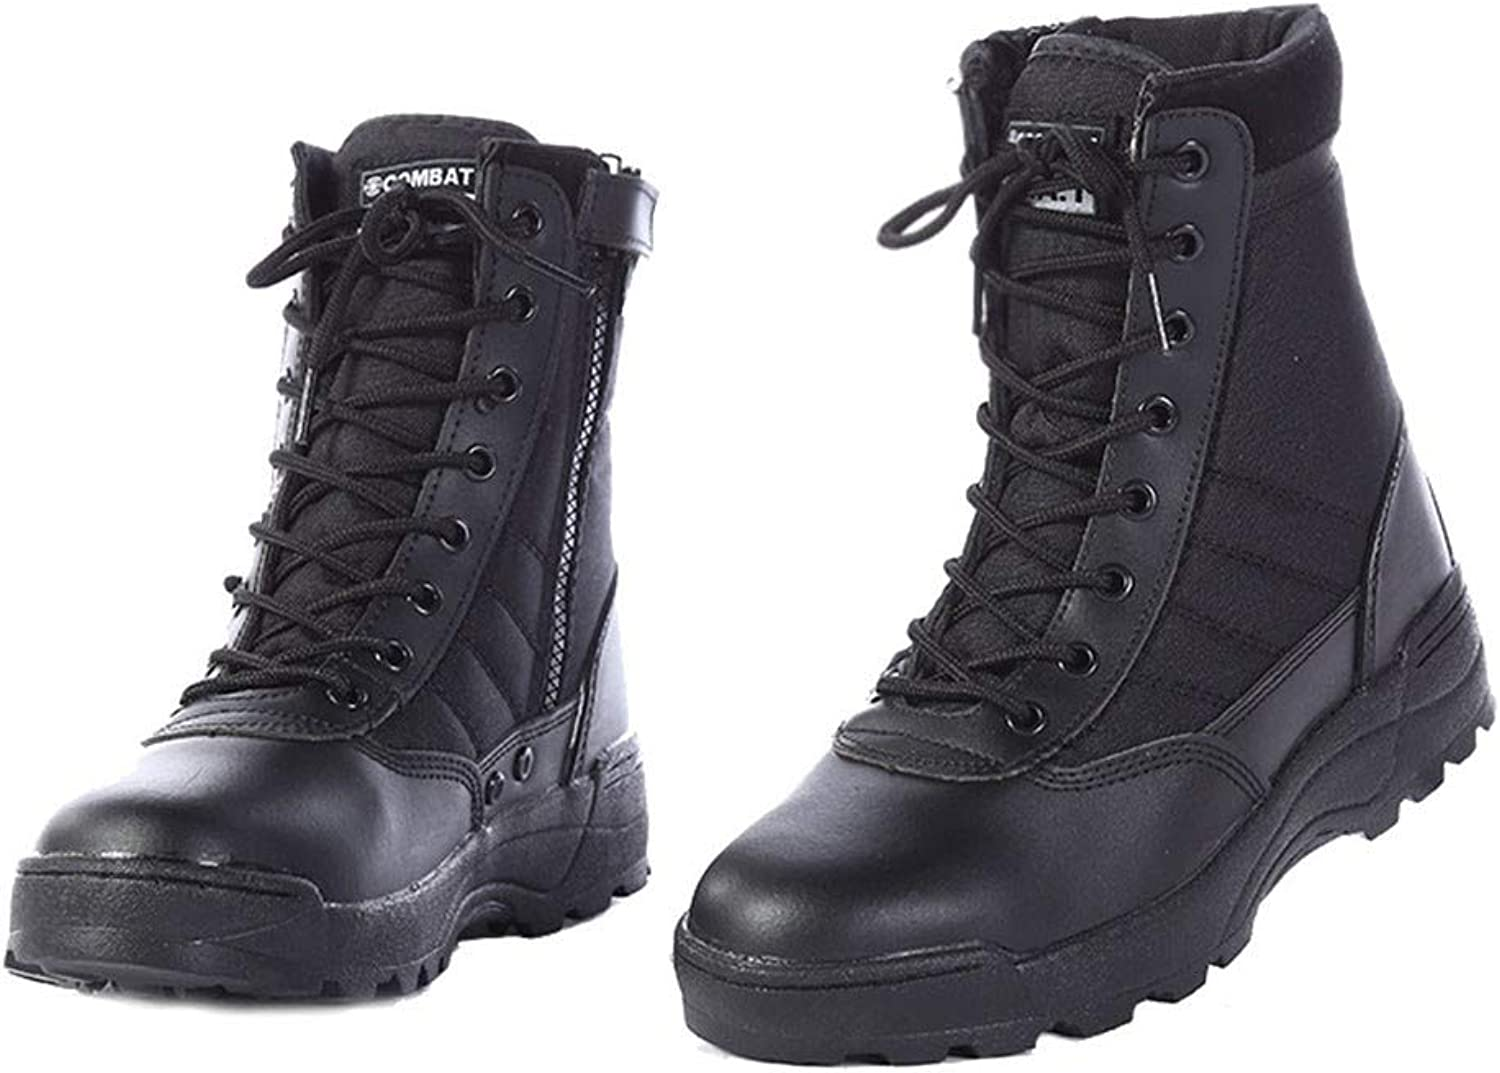 IDNG Basketball shoes Leather Boots for Men Infantry Tactical Boots Army shoes Motorcycle Boots